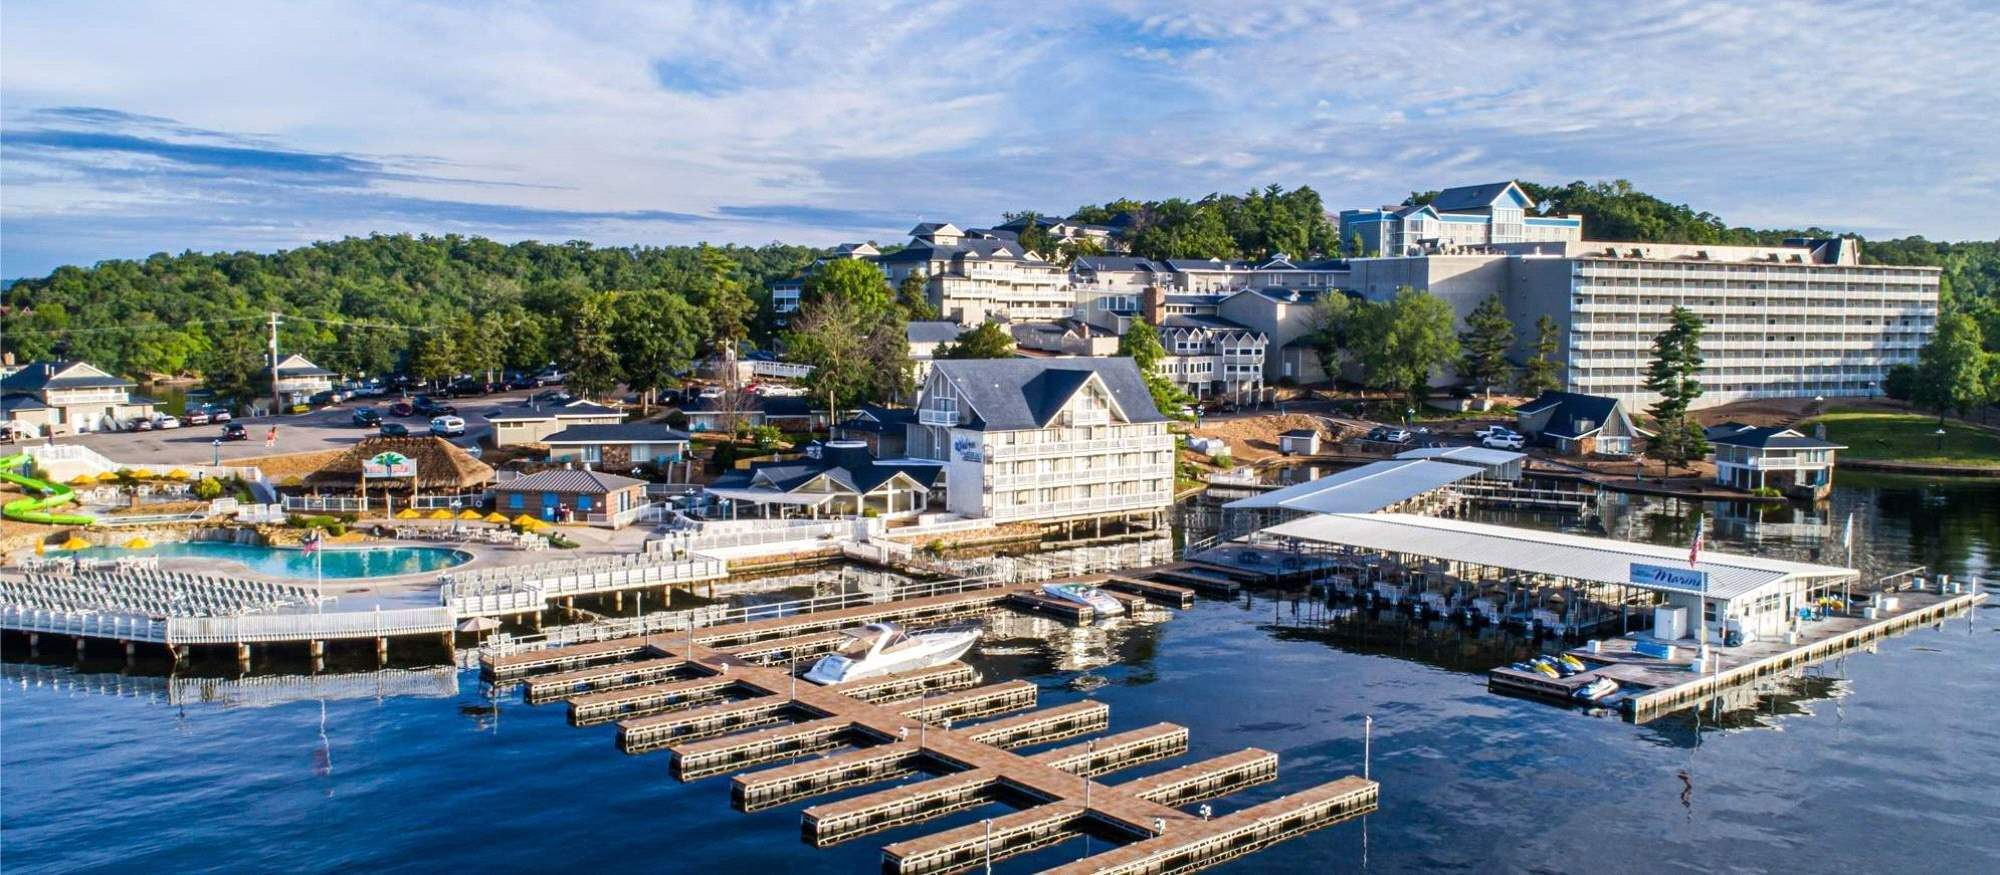 Margaritaville Lake Resort Lake of the Ozarks Osage Beach Missouri top